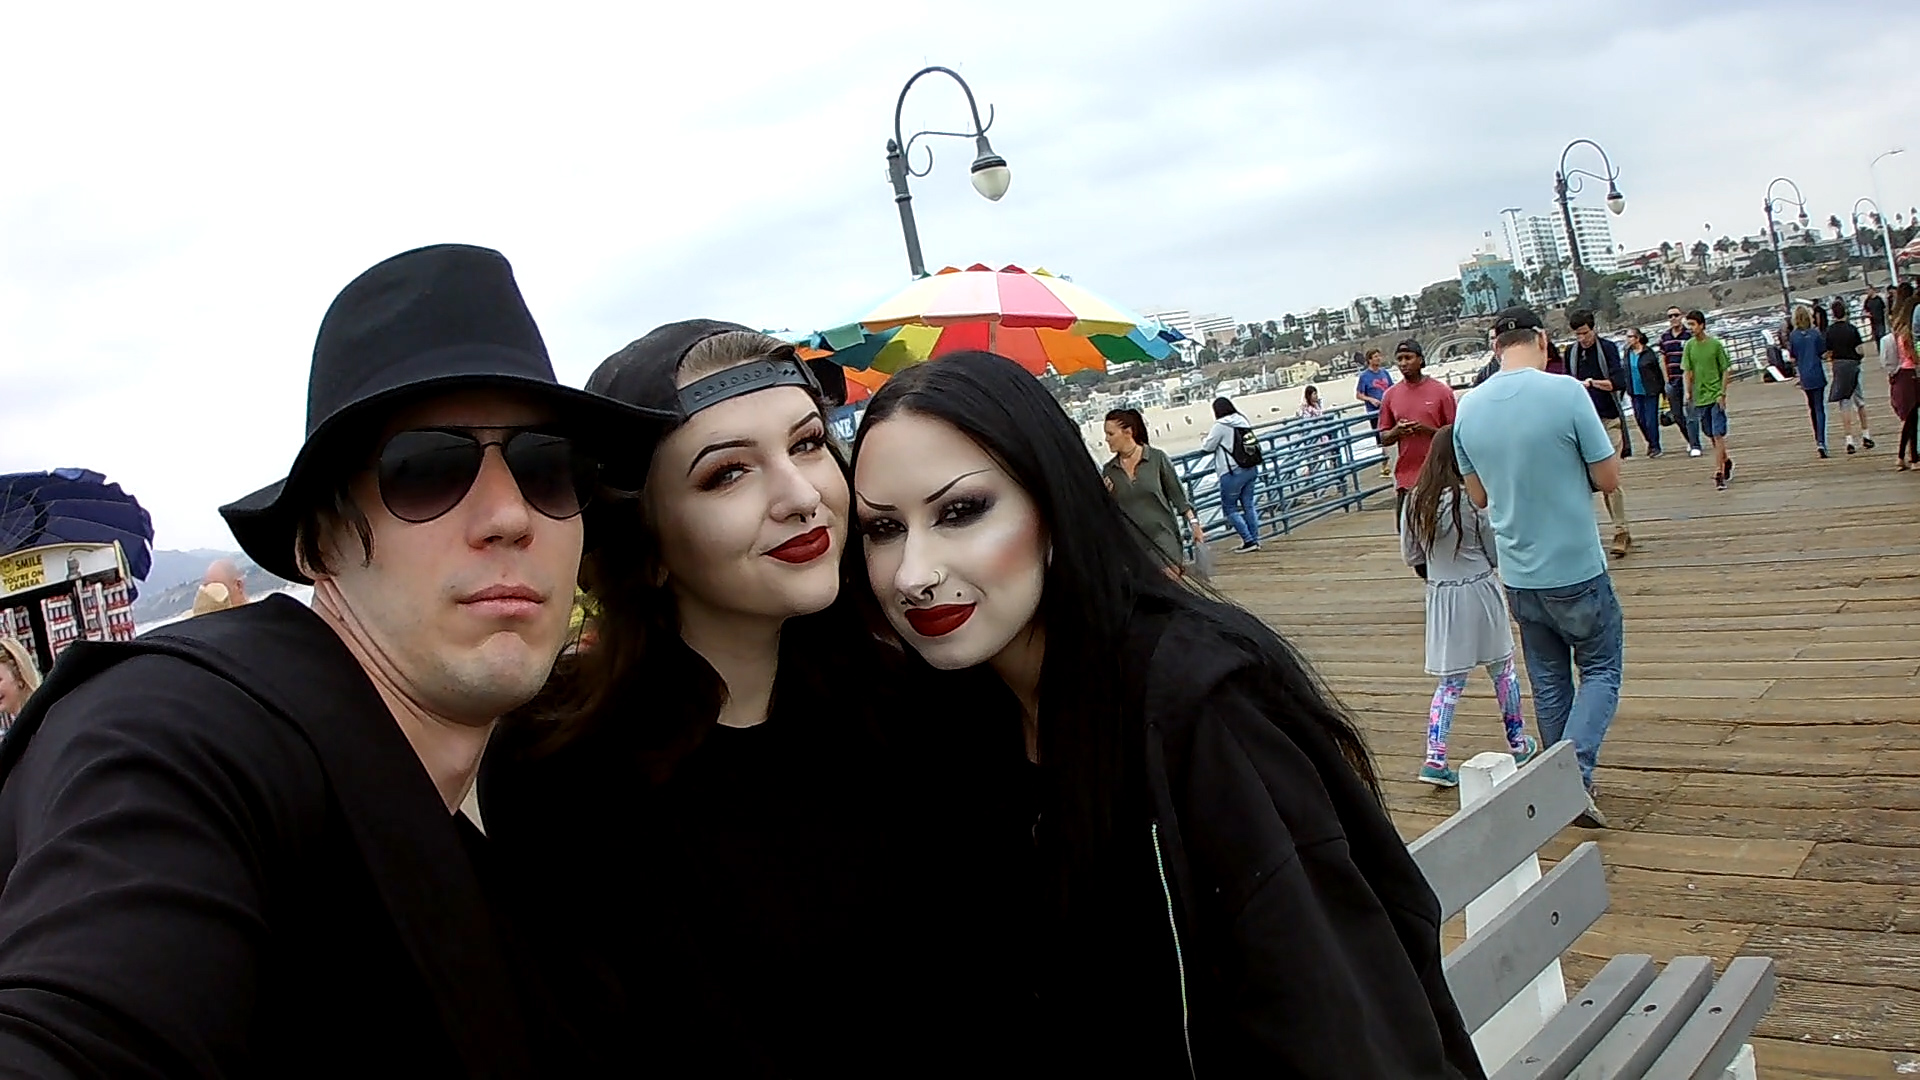 With adorable ladies 2 - Santa Monica Pier - Los Angeles CA 2016